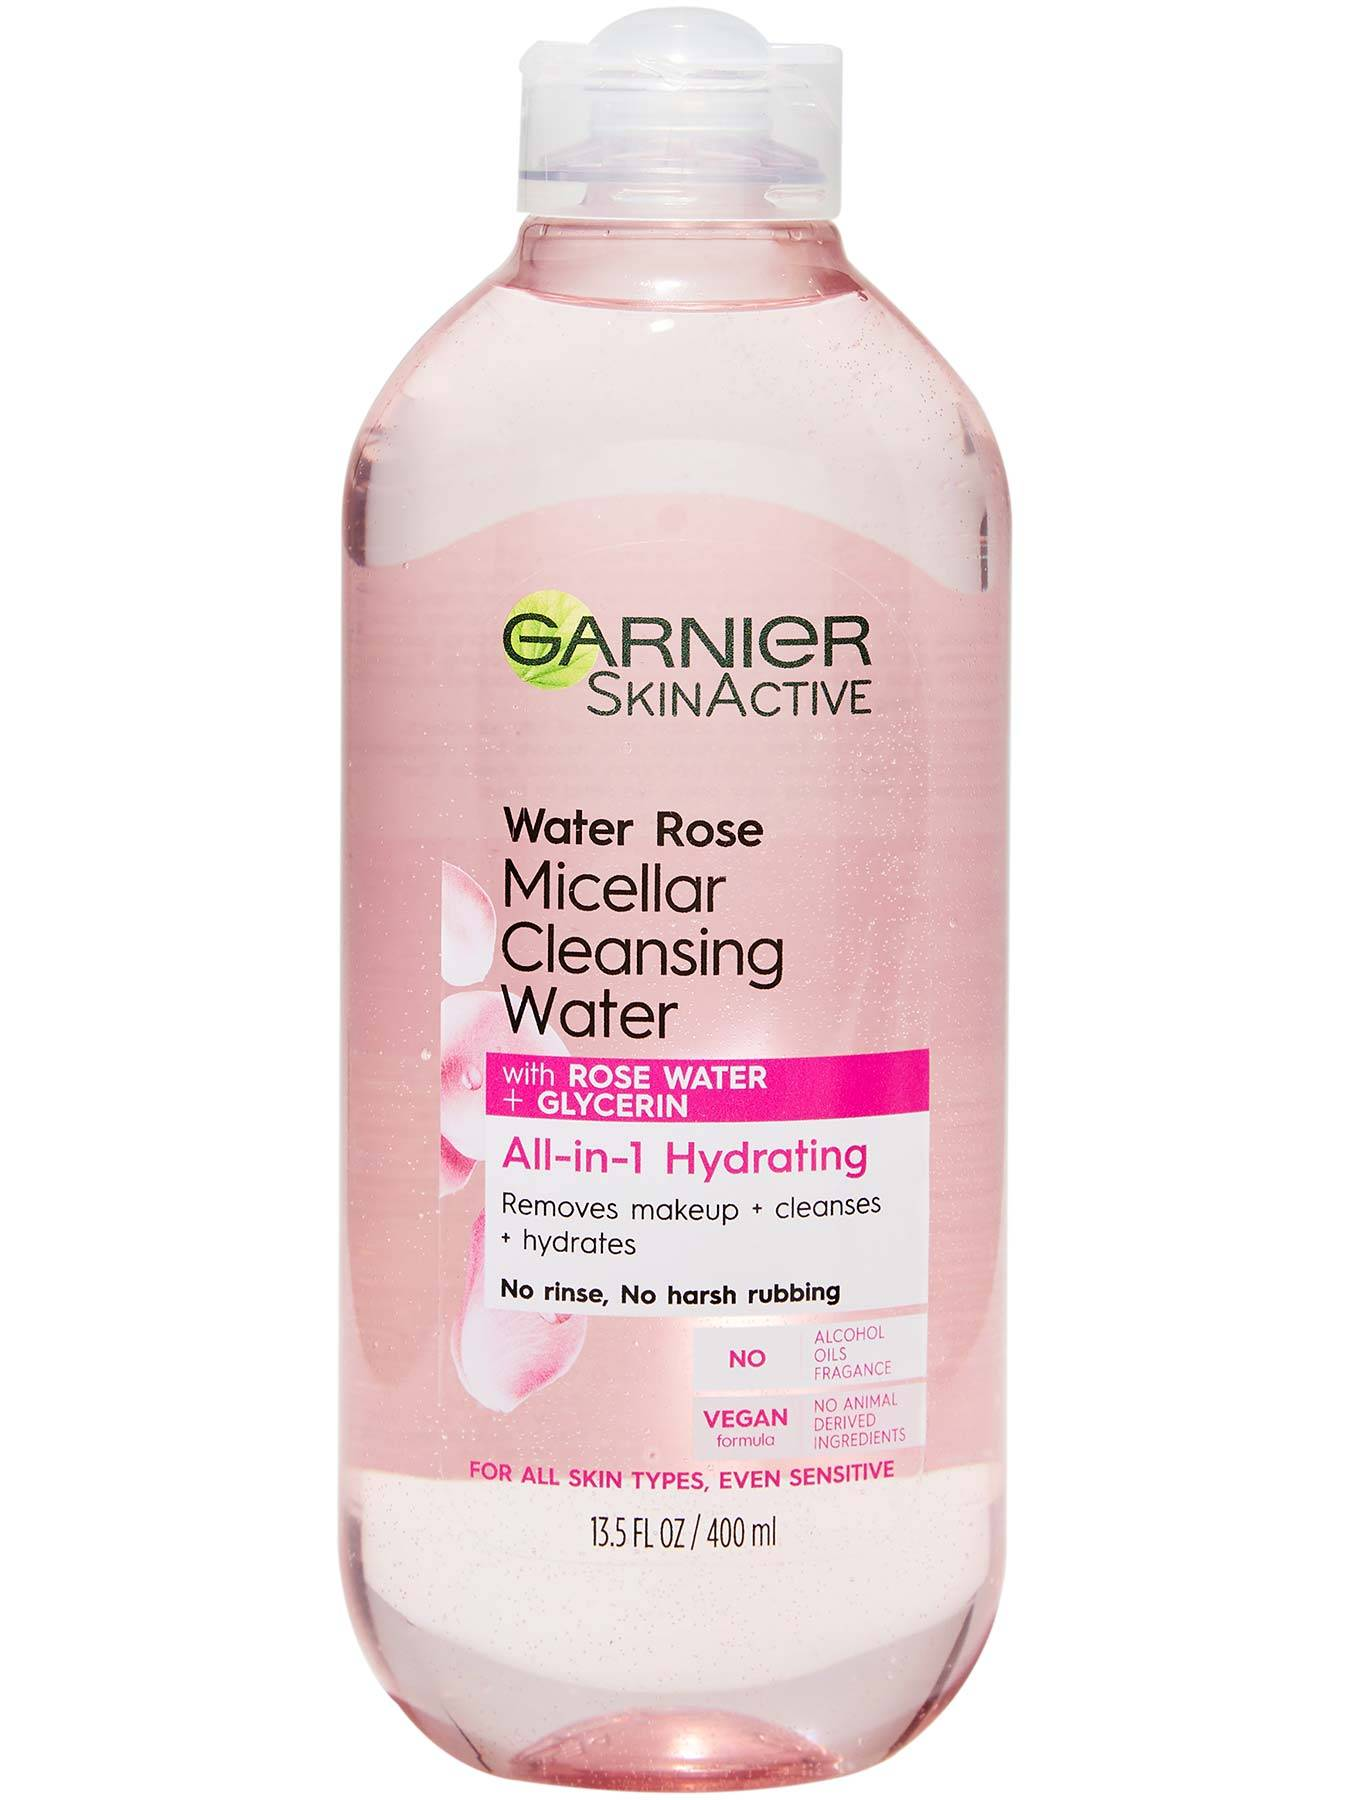 Skin Care Products For Every Skin Type - Garnier